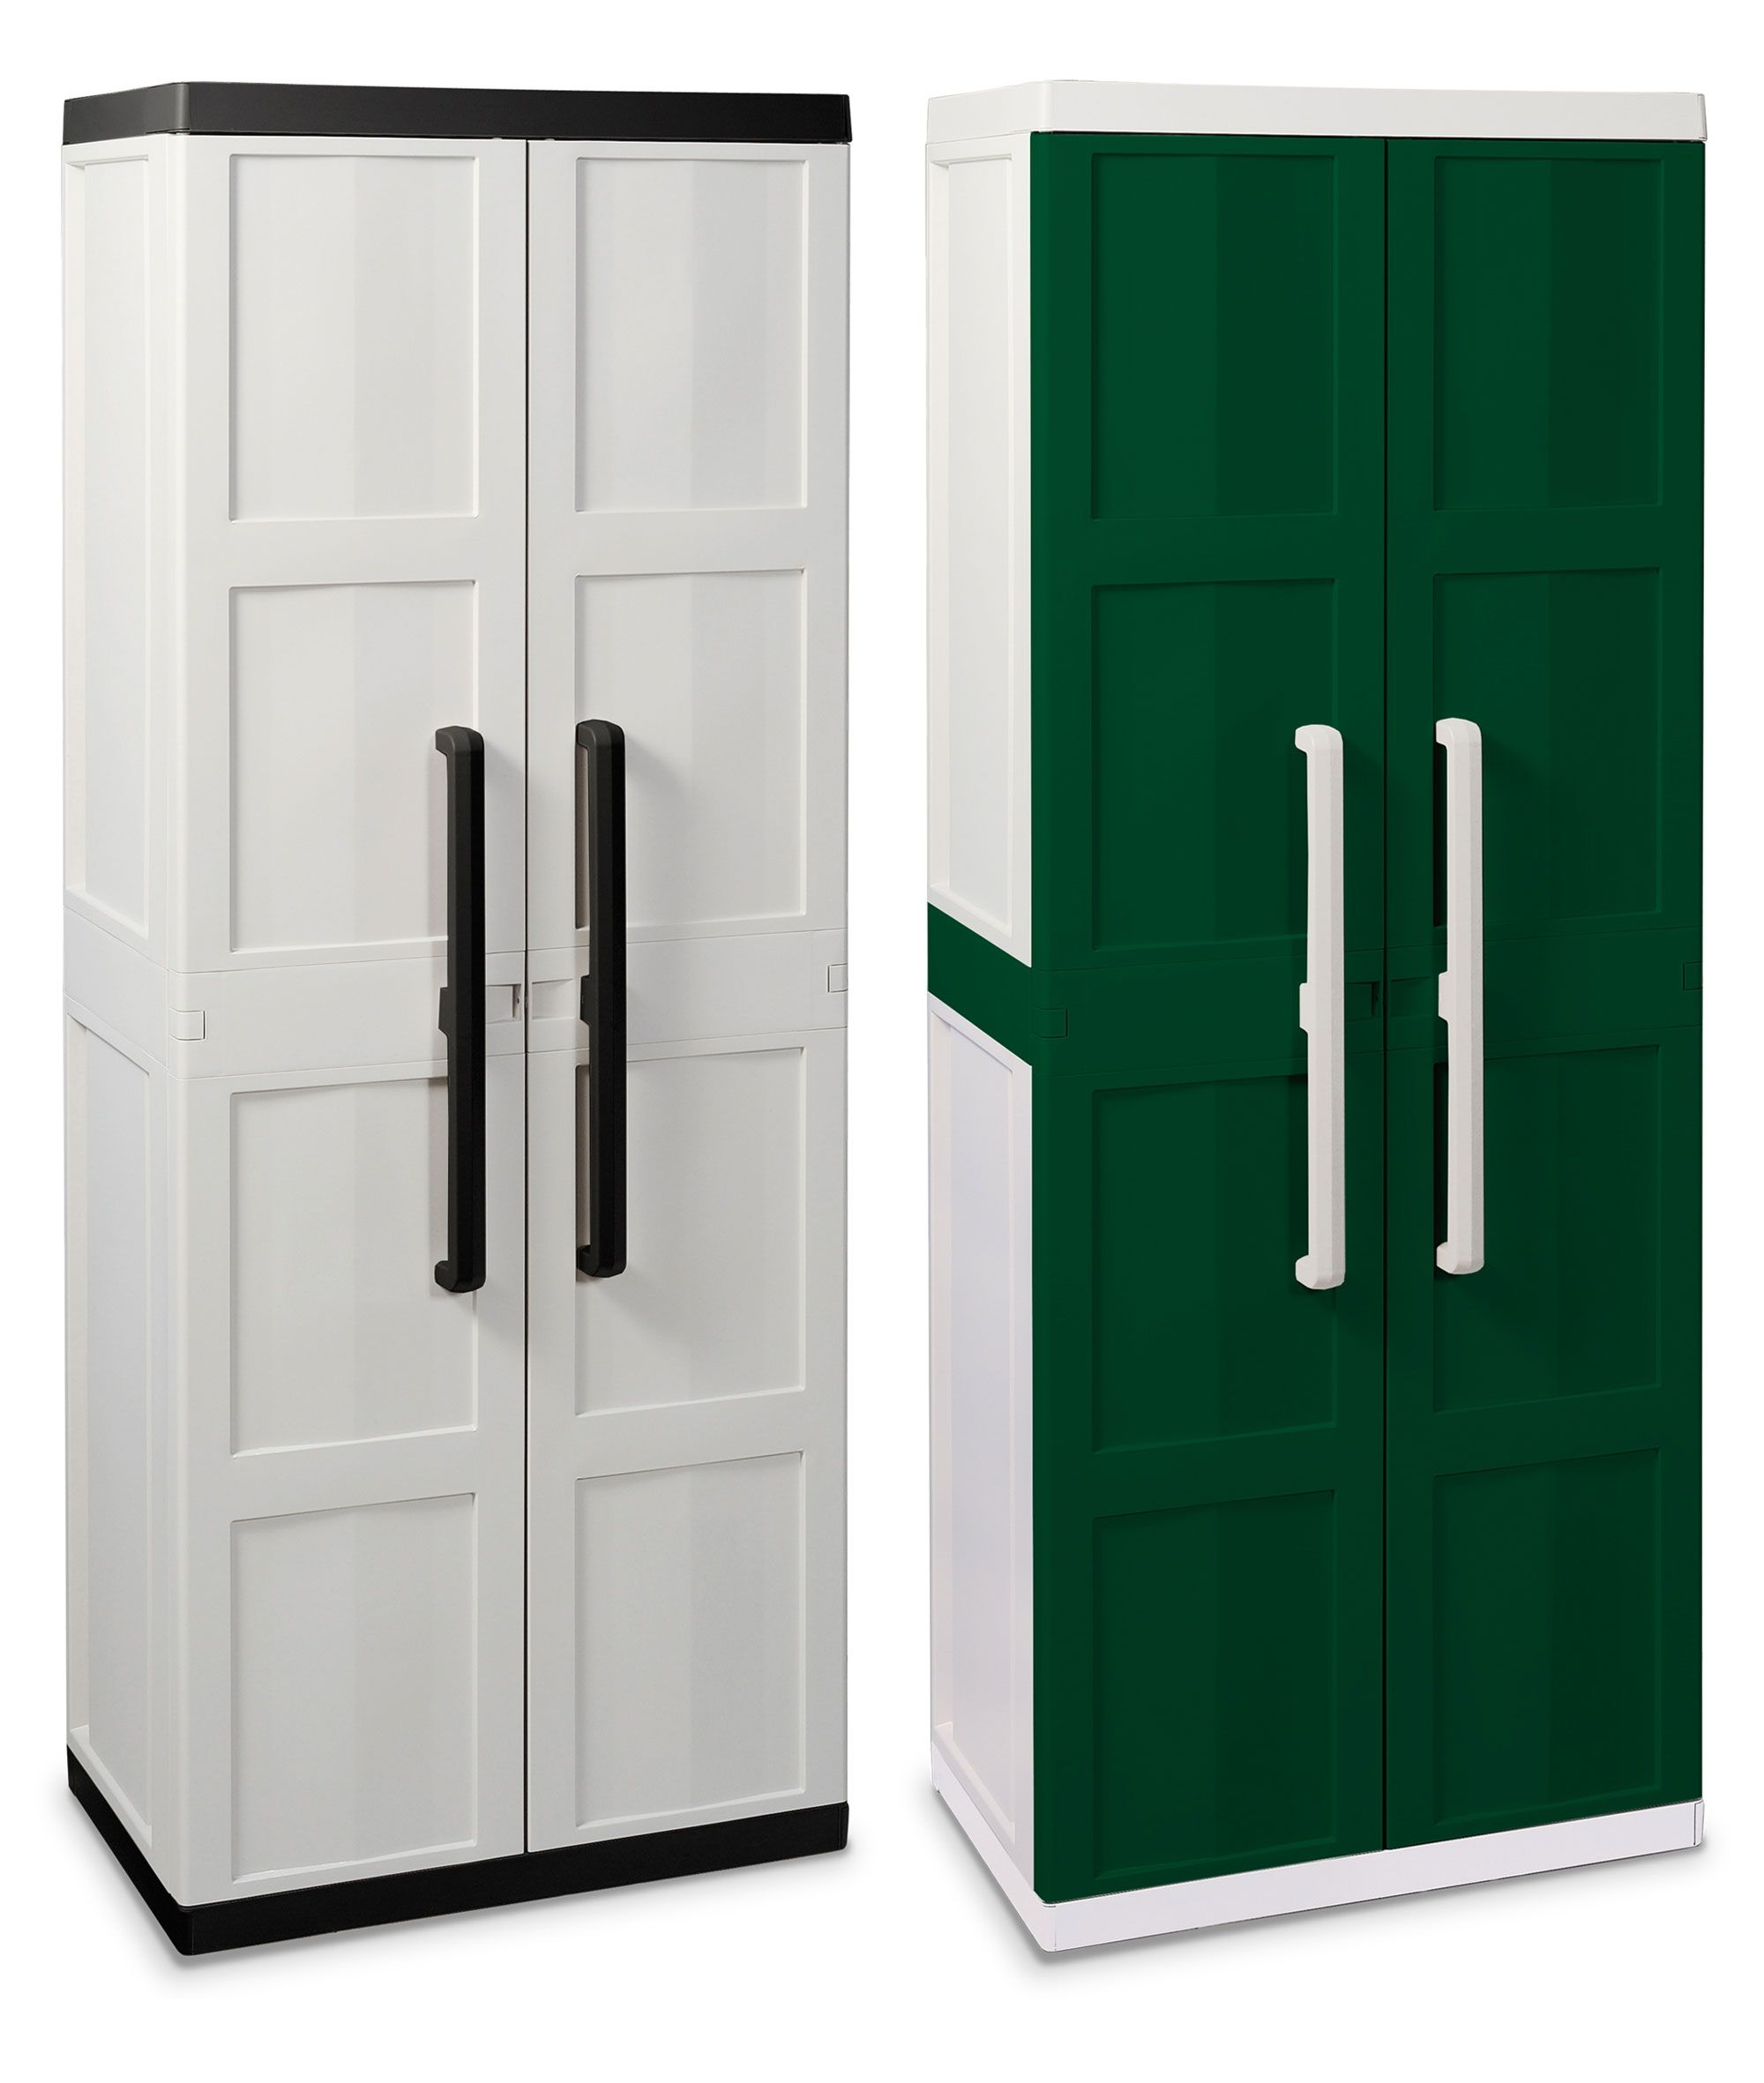 Plastic Storage Cabinet With Doors Gallery doors design modern